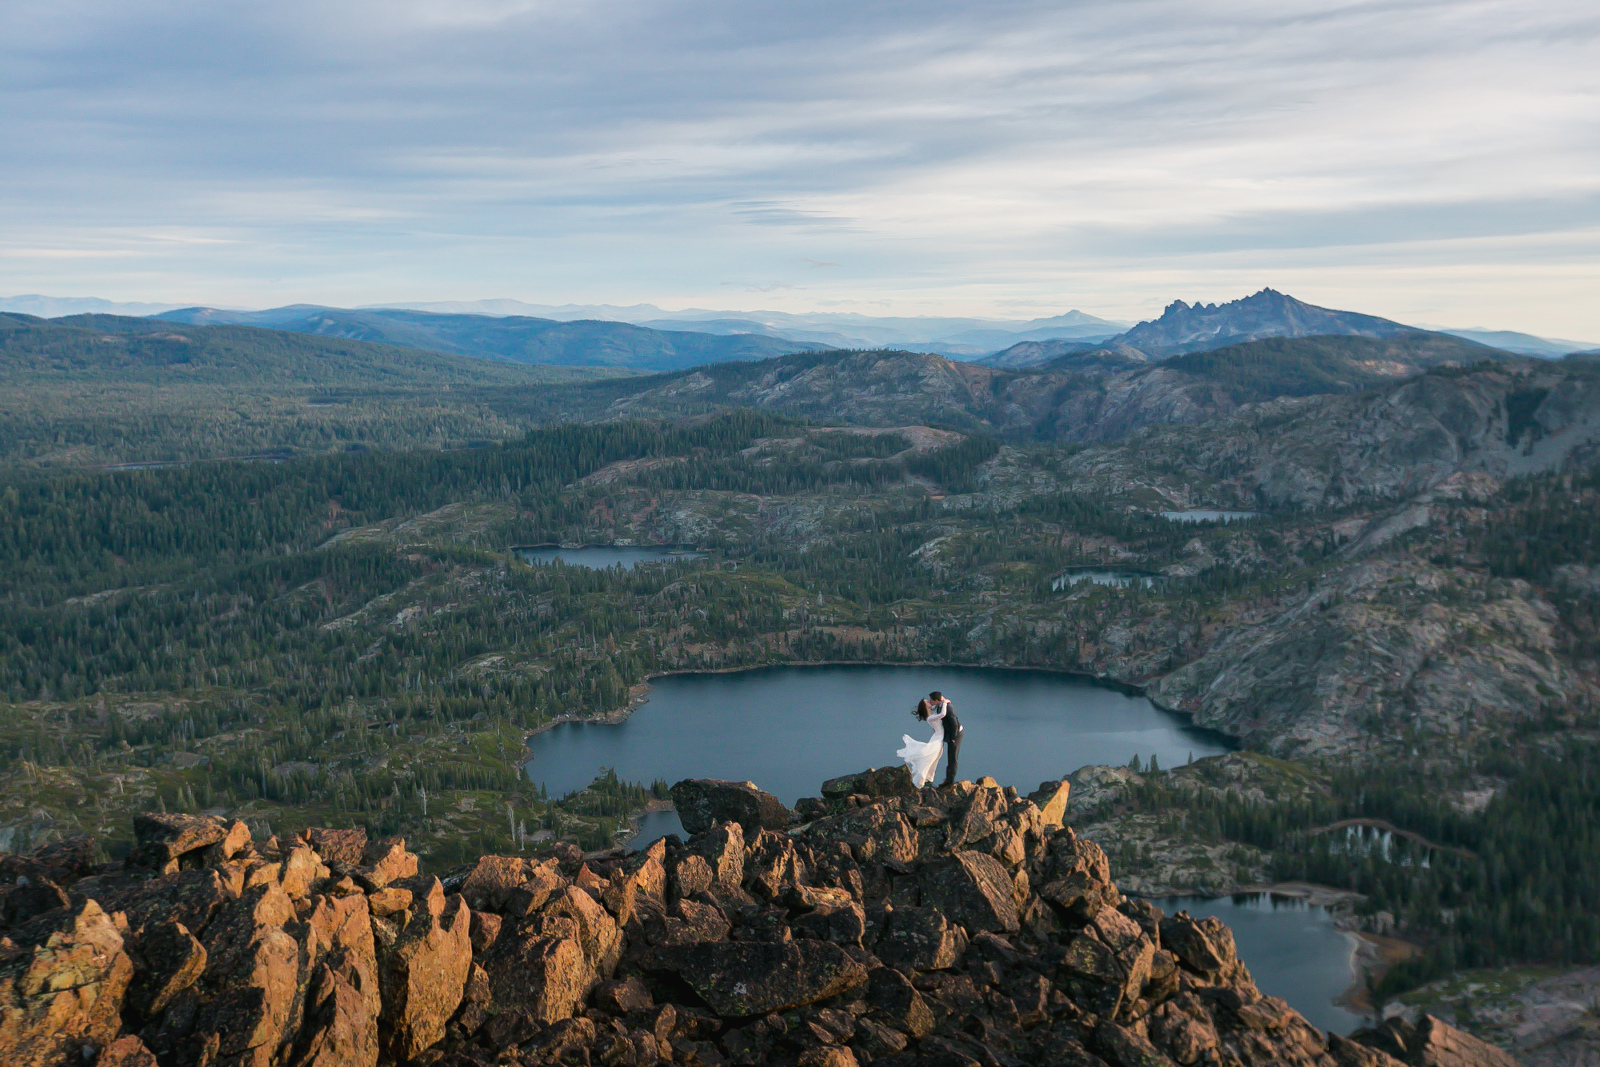 Epic shot of bride and groom embracing on a mountain top.